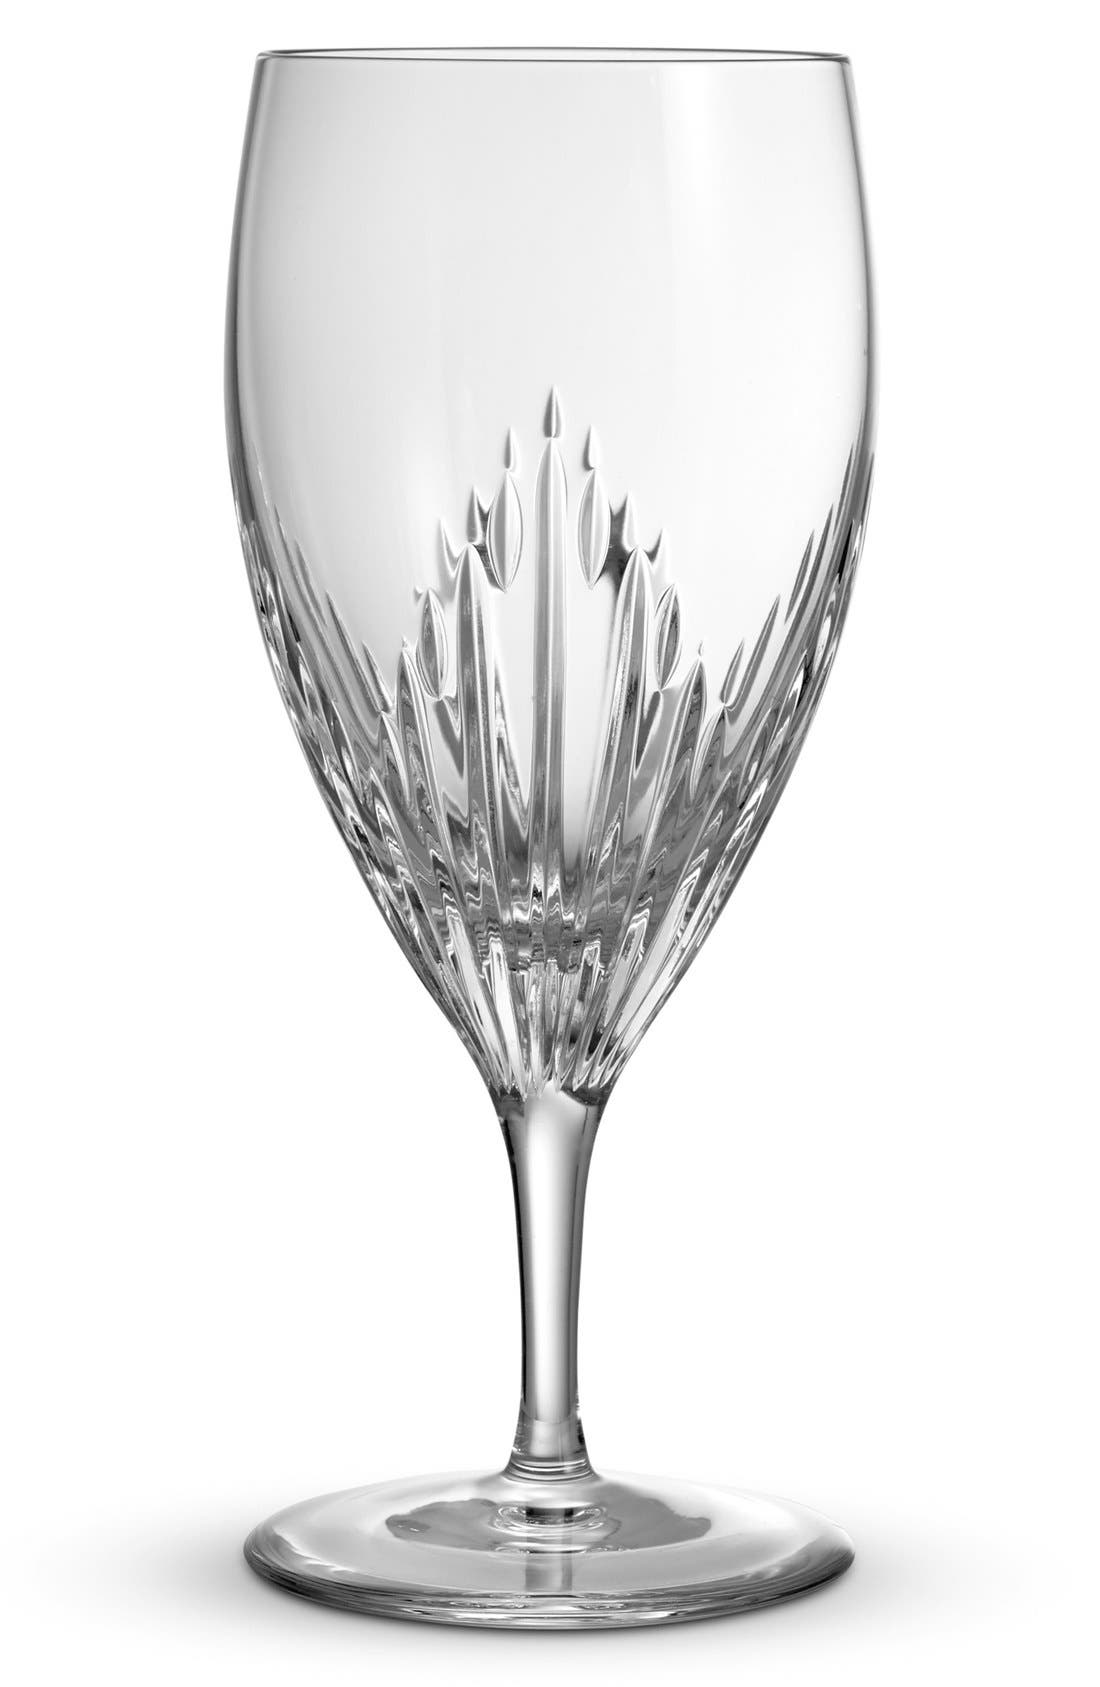 MoniqueLhuillierWaterford 'Stardust' Lead Crystal Iced Beverage Glass,                         Main,                         color, 100